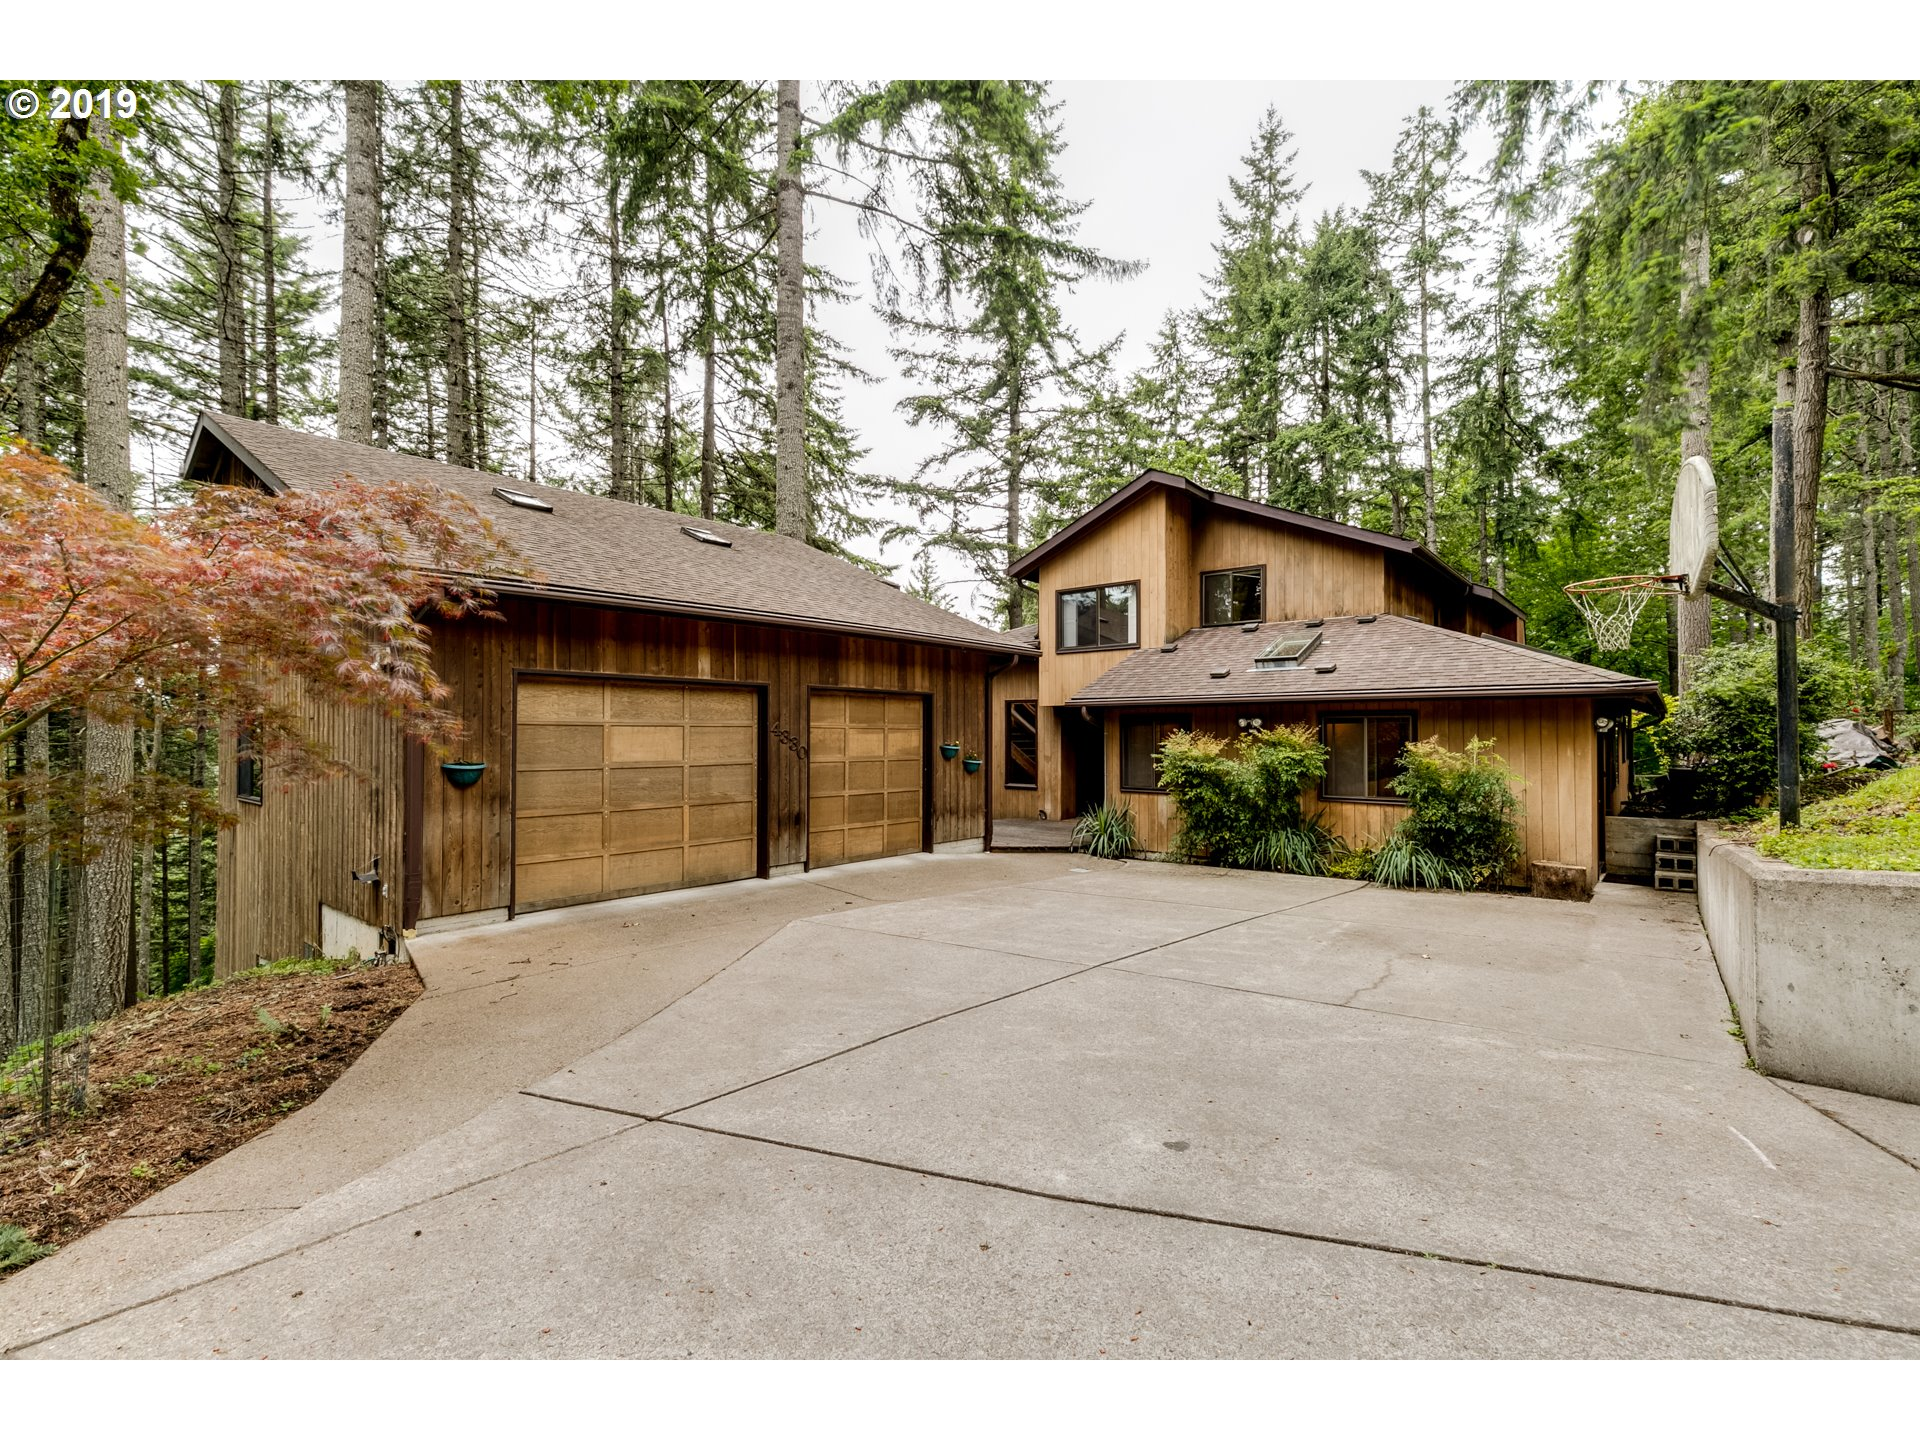 4330 N SHASTA LOOP, Eugene OR 97405